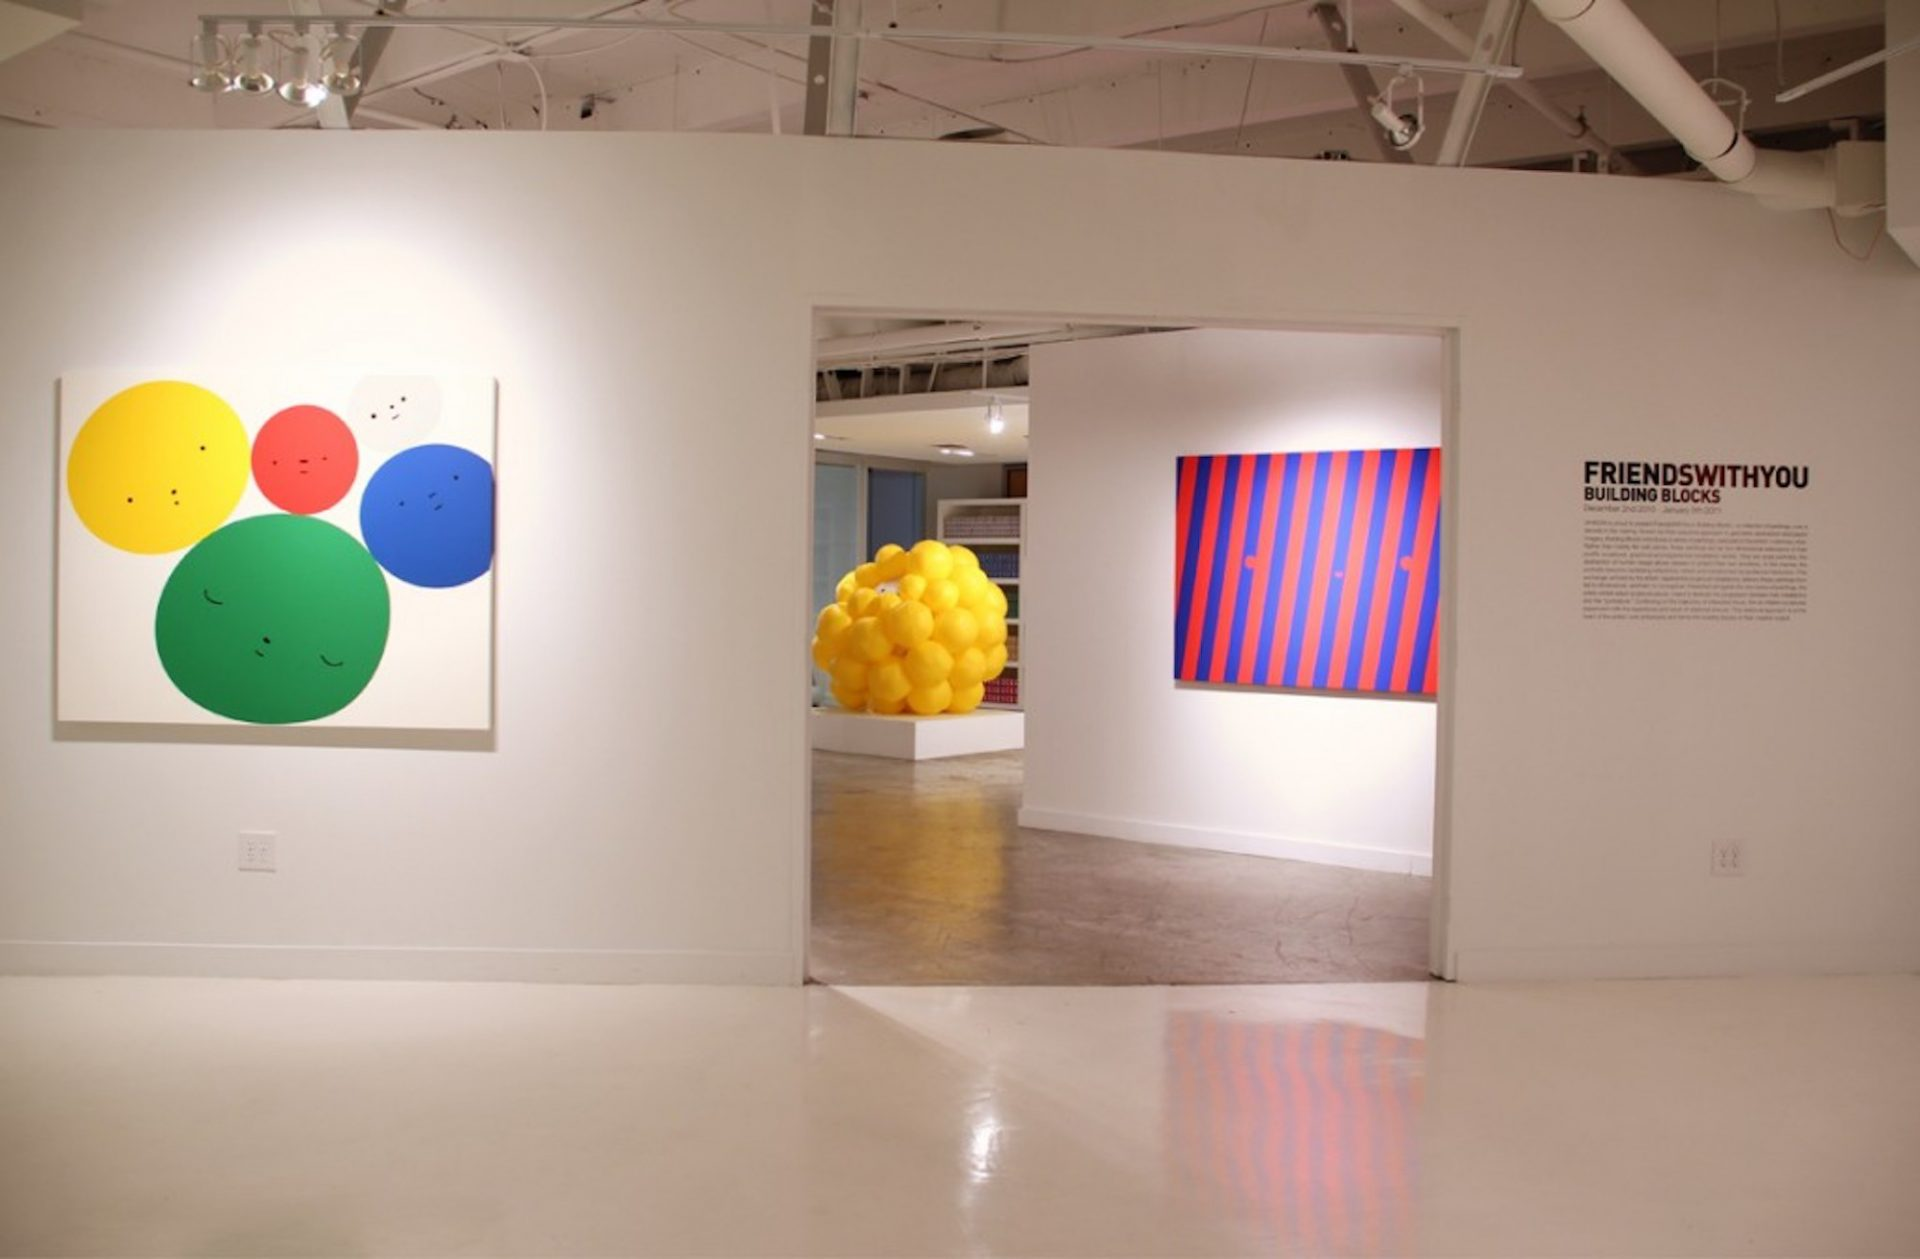 L to R; Happy thoughts, Cel-vinyl on wood panel, 60 inches W x 48 inches , 2010 - Bursting with Joy, Inflatable PVC, 4 feet W x 4 feet H - the Devil, Cel-vinyl on wood panel, 72 inches W x 48 inches H, 2010